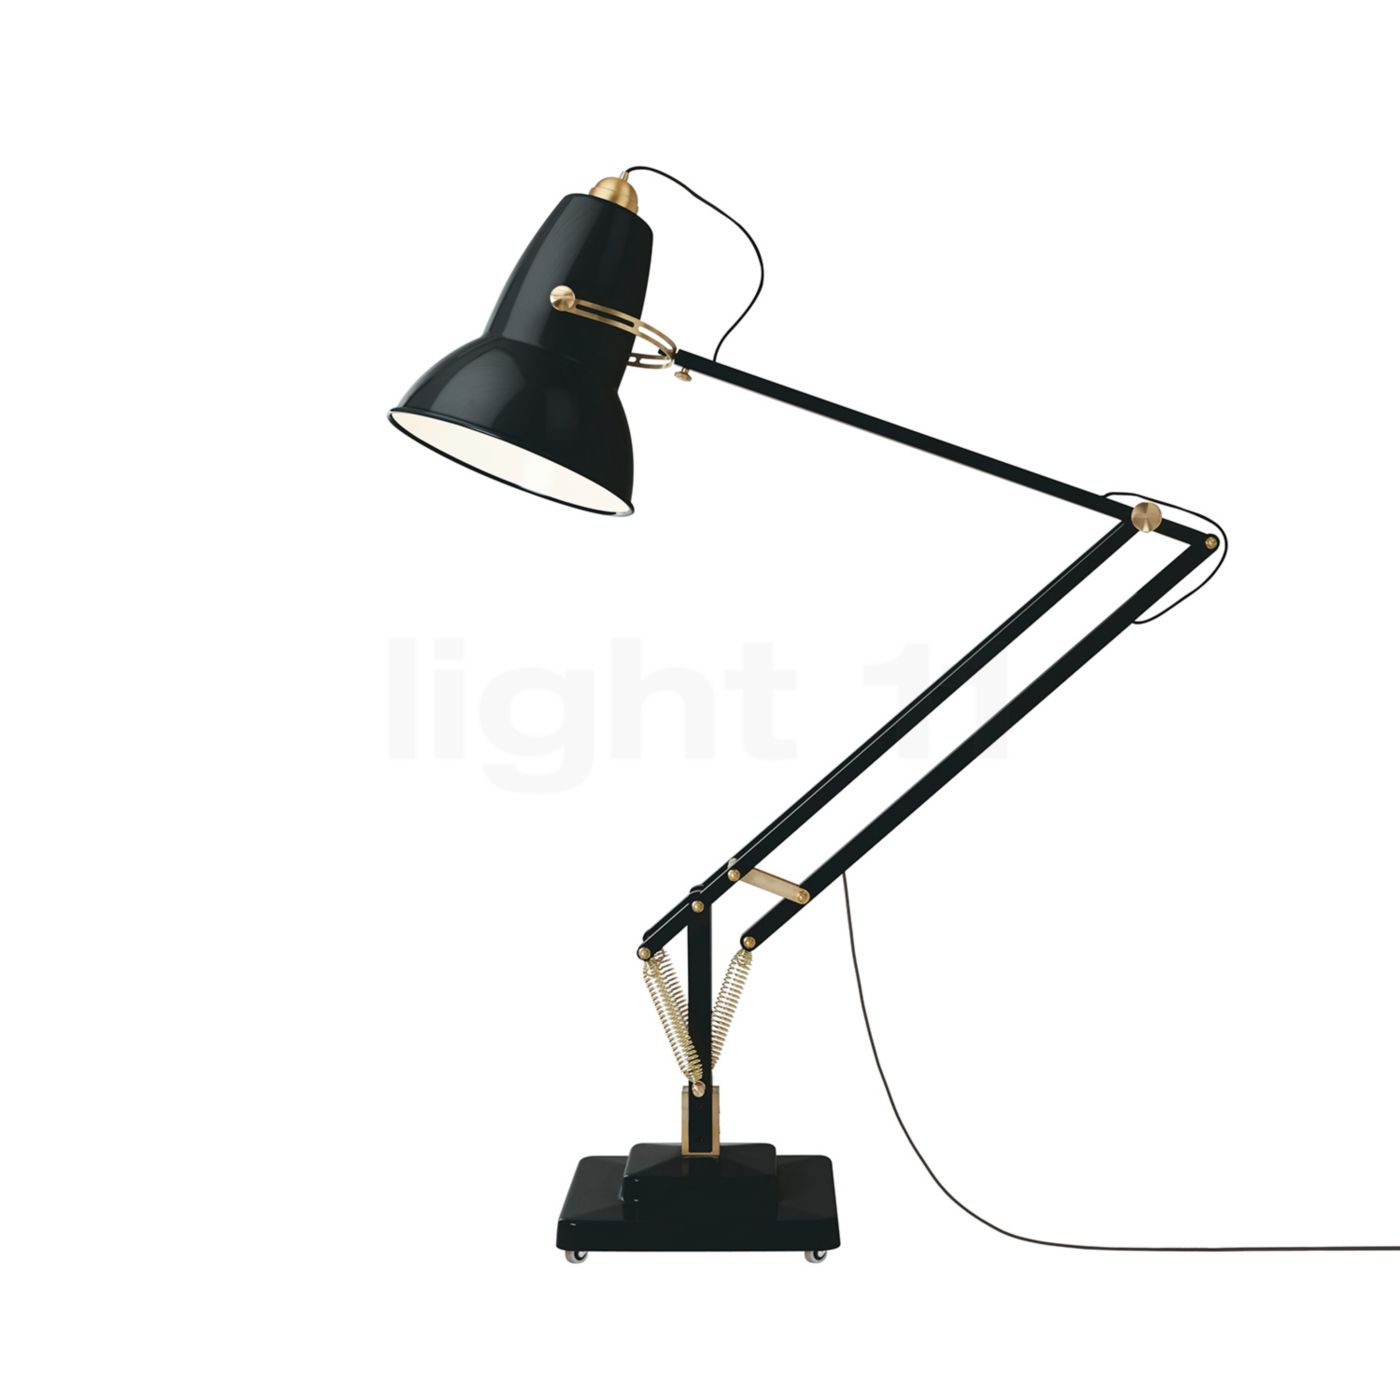 Anglepoise original 1227 giant brass floor lamp floor lamps - Giant anglepoise lamp ...